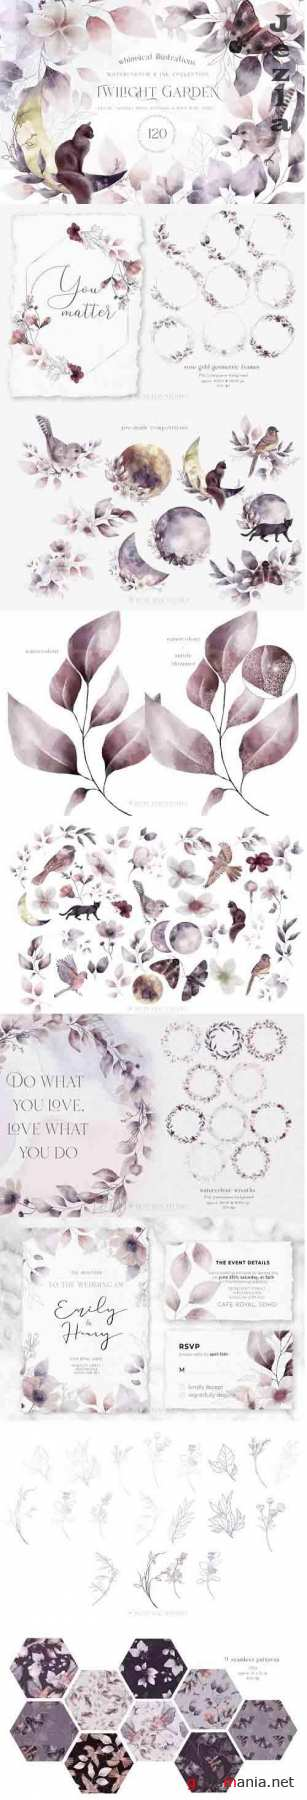 Whimsical Leaves Flowers Birds Moons Watercolor Patterns - 1284729 - Twilight Garden